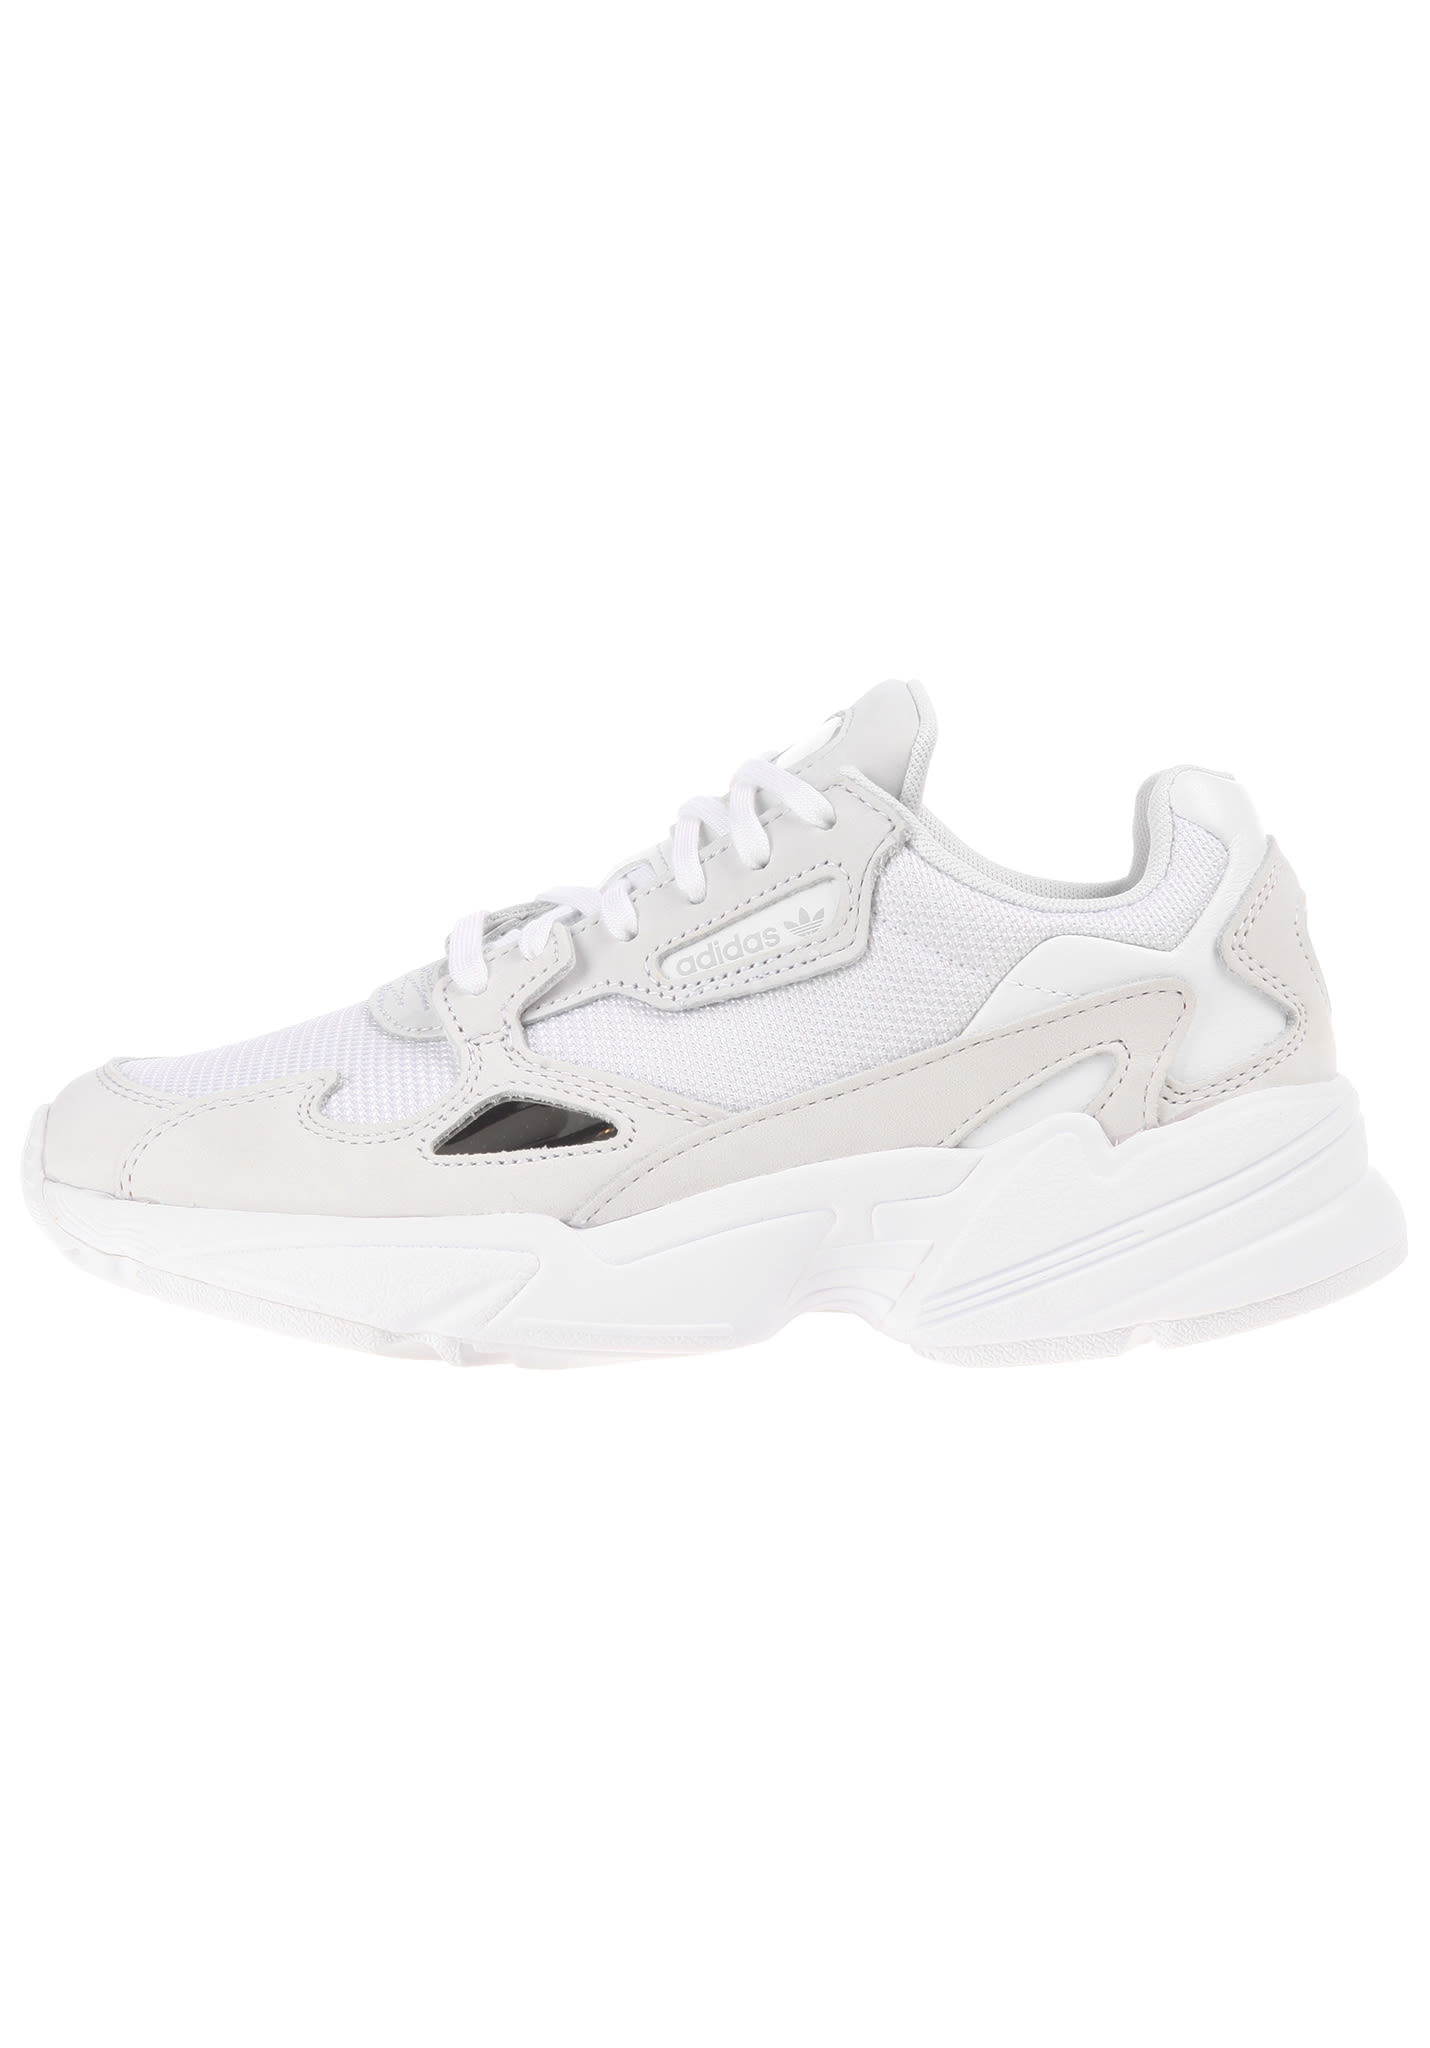 c7a7a486b33 ADIDAS ORIGINALS Falcon - Sneakers voor Dames - Wit - Planet Sports